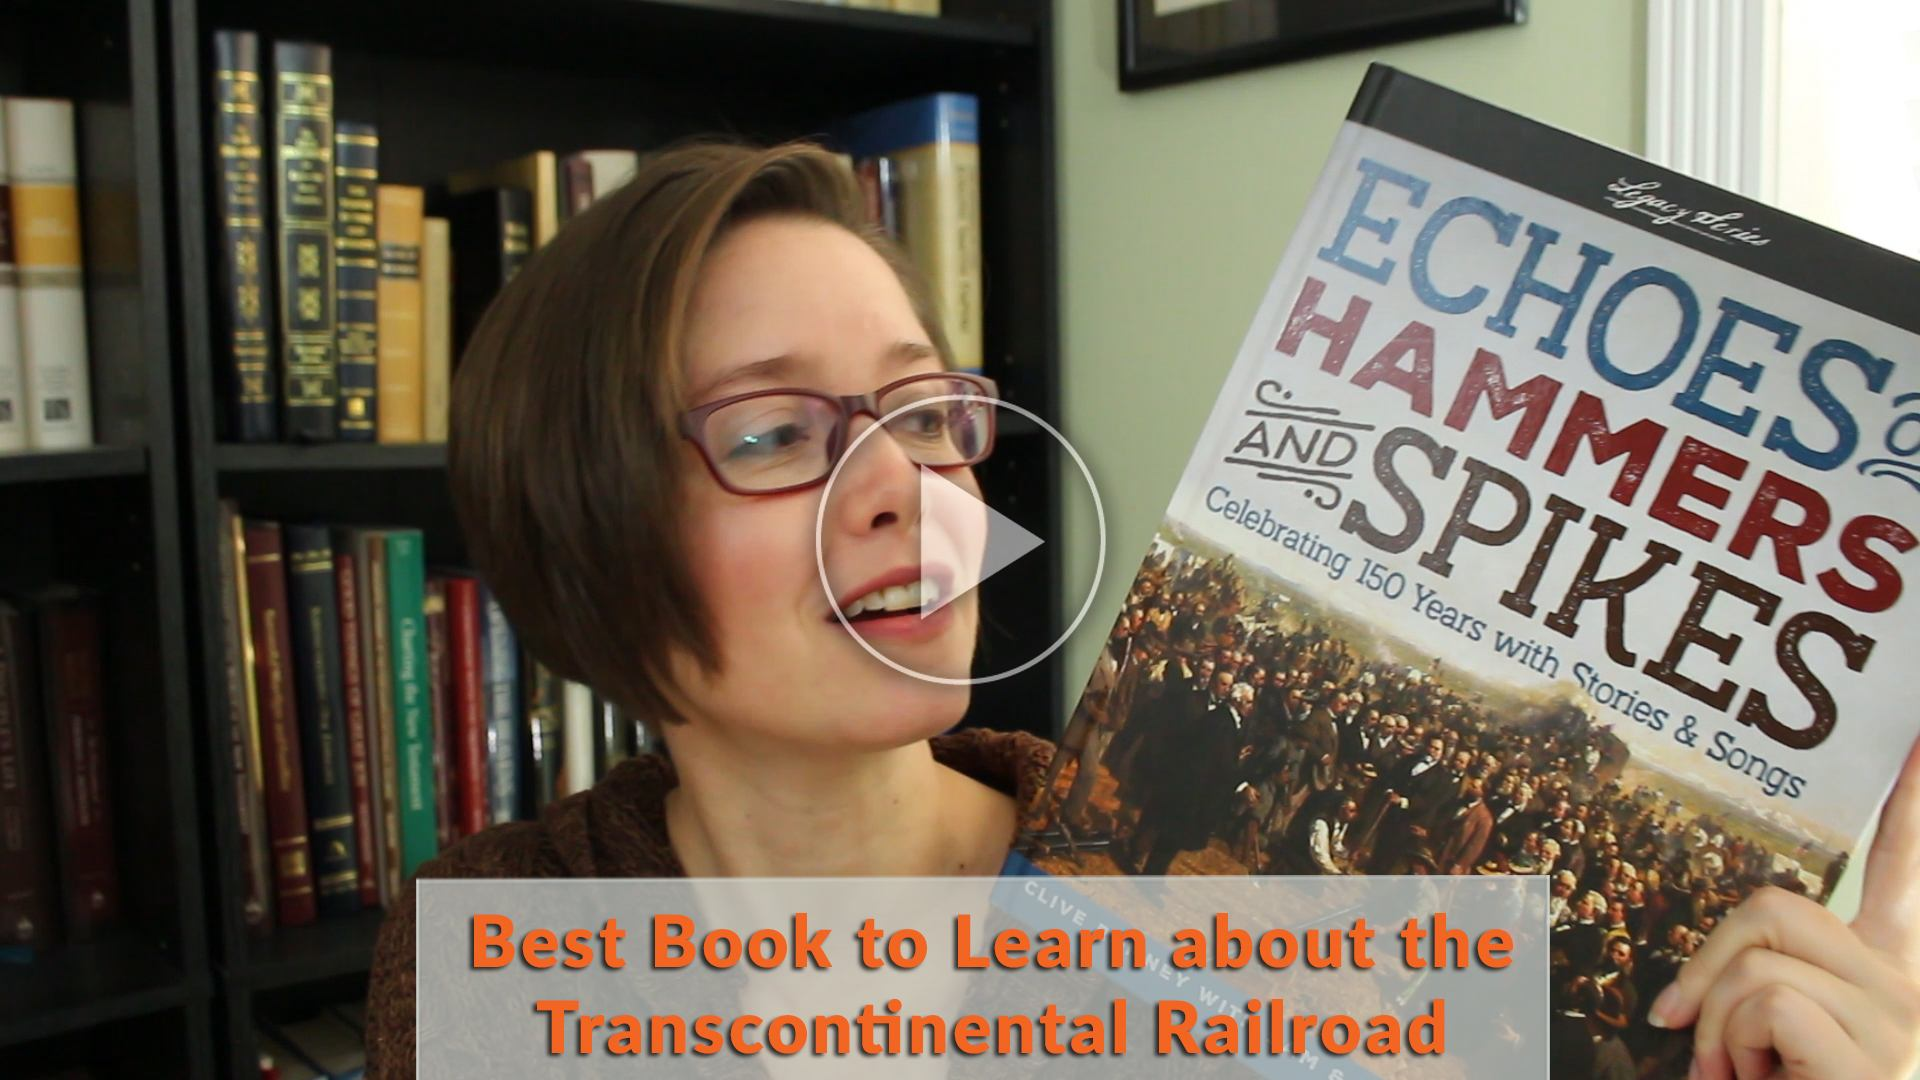 Transcontinental railroad living history book review